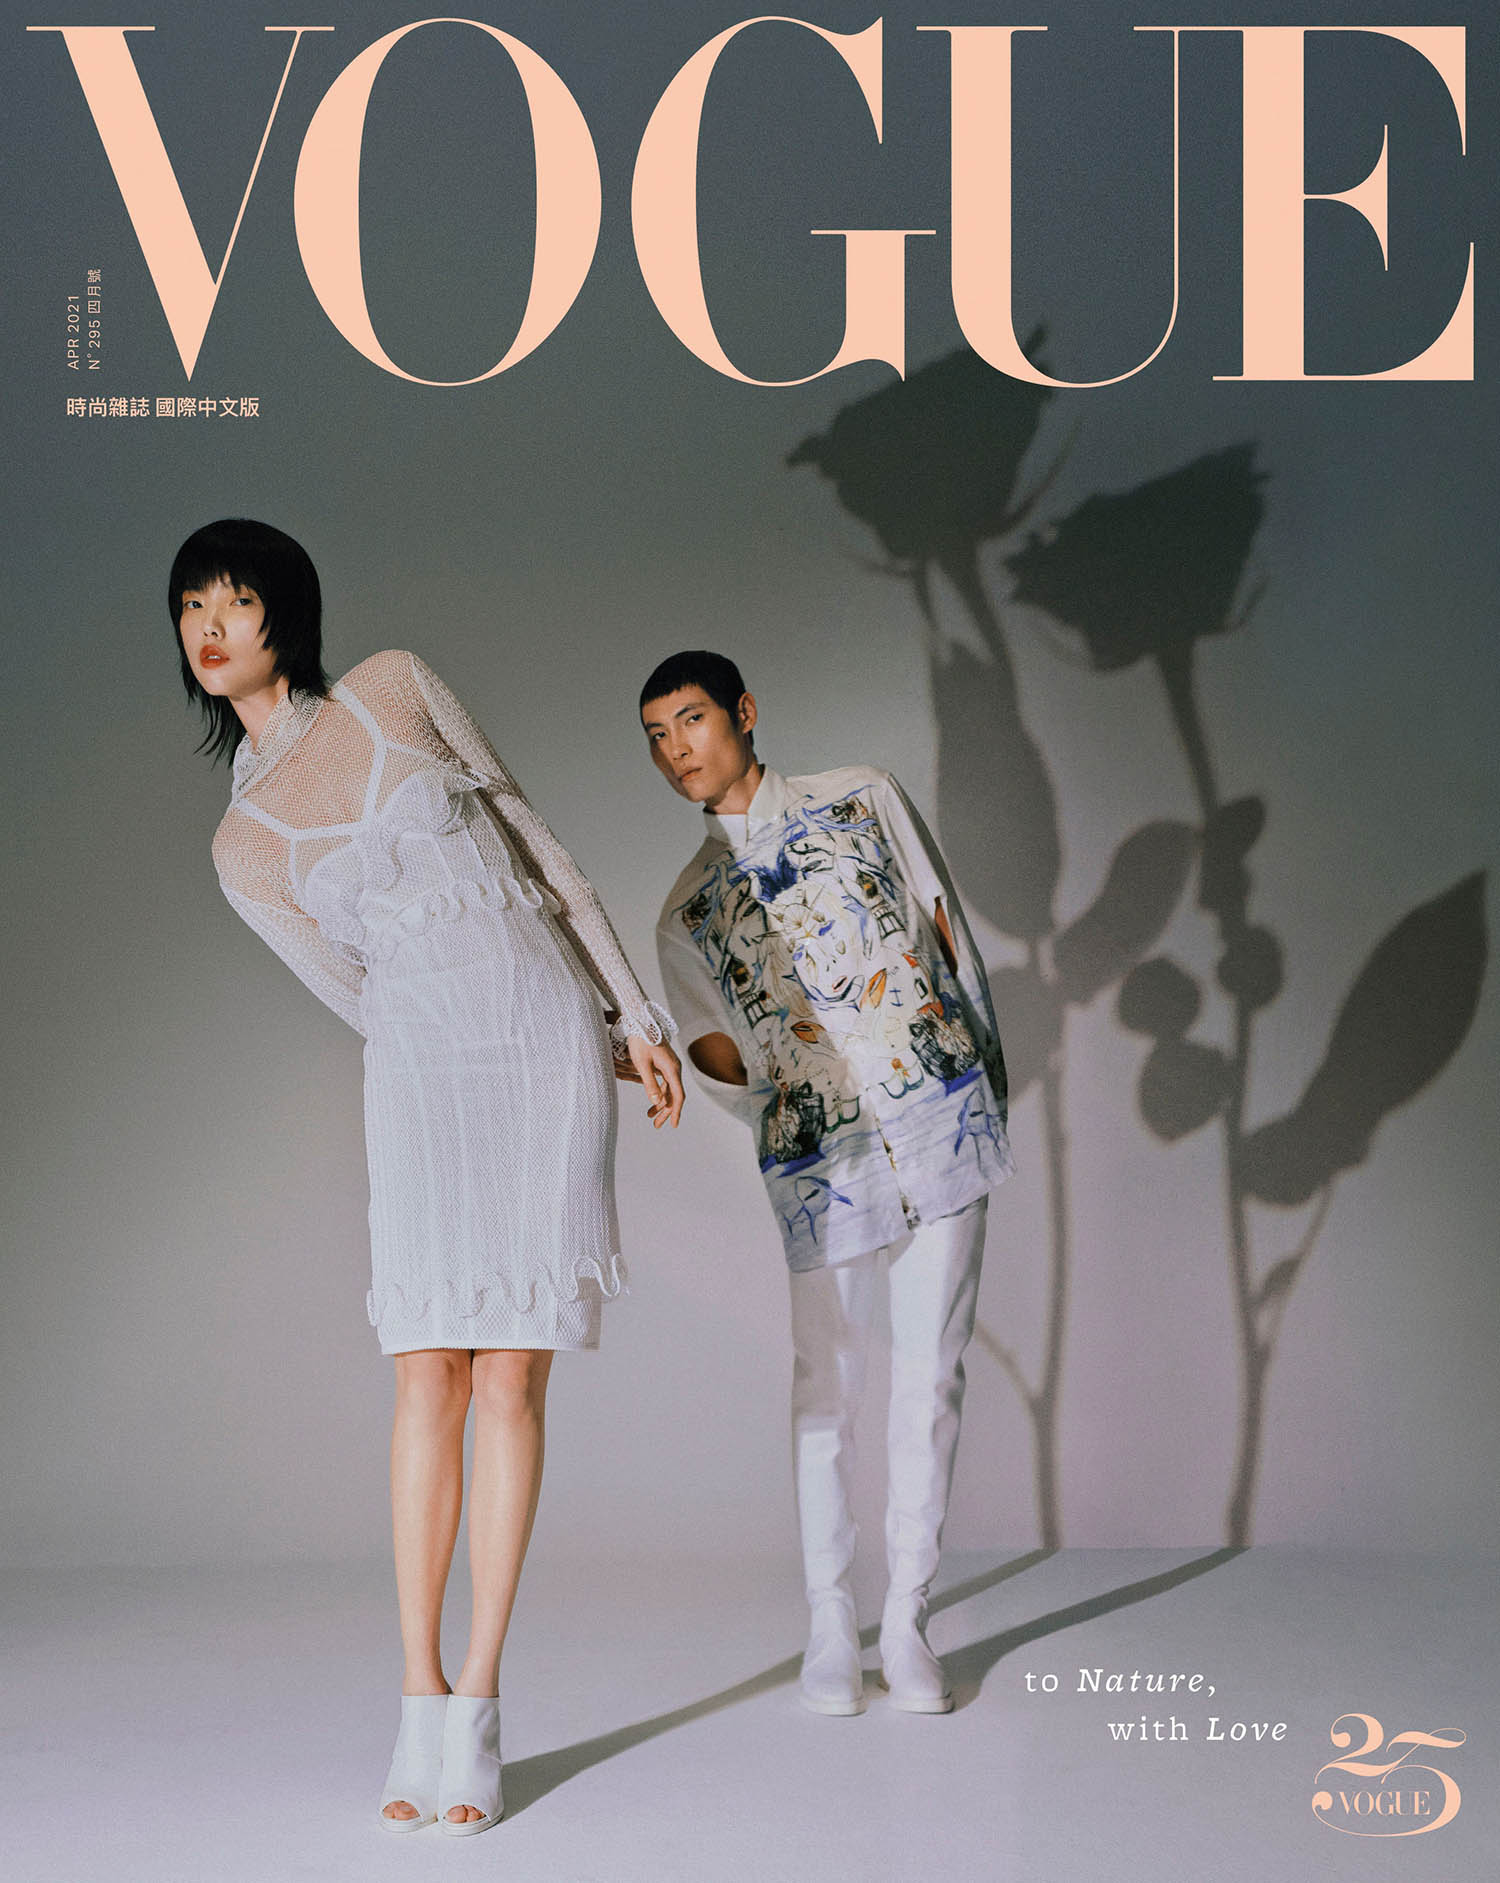 Jessie Hsu and Jean Chang cover Vogue Taiwan April 2021 by Zhong Lin